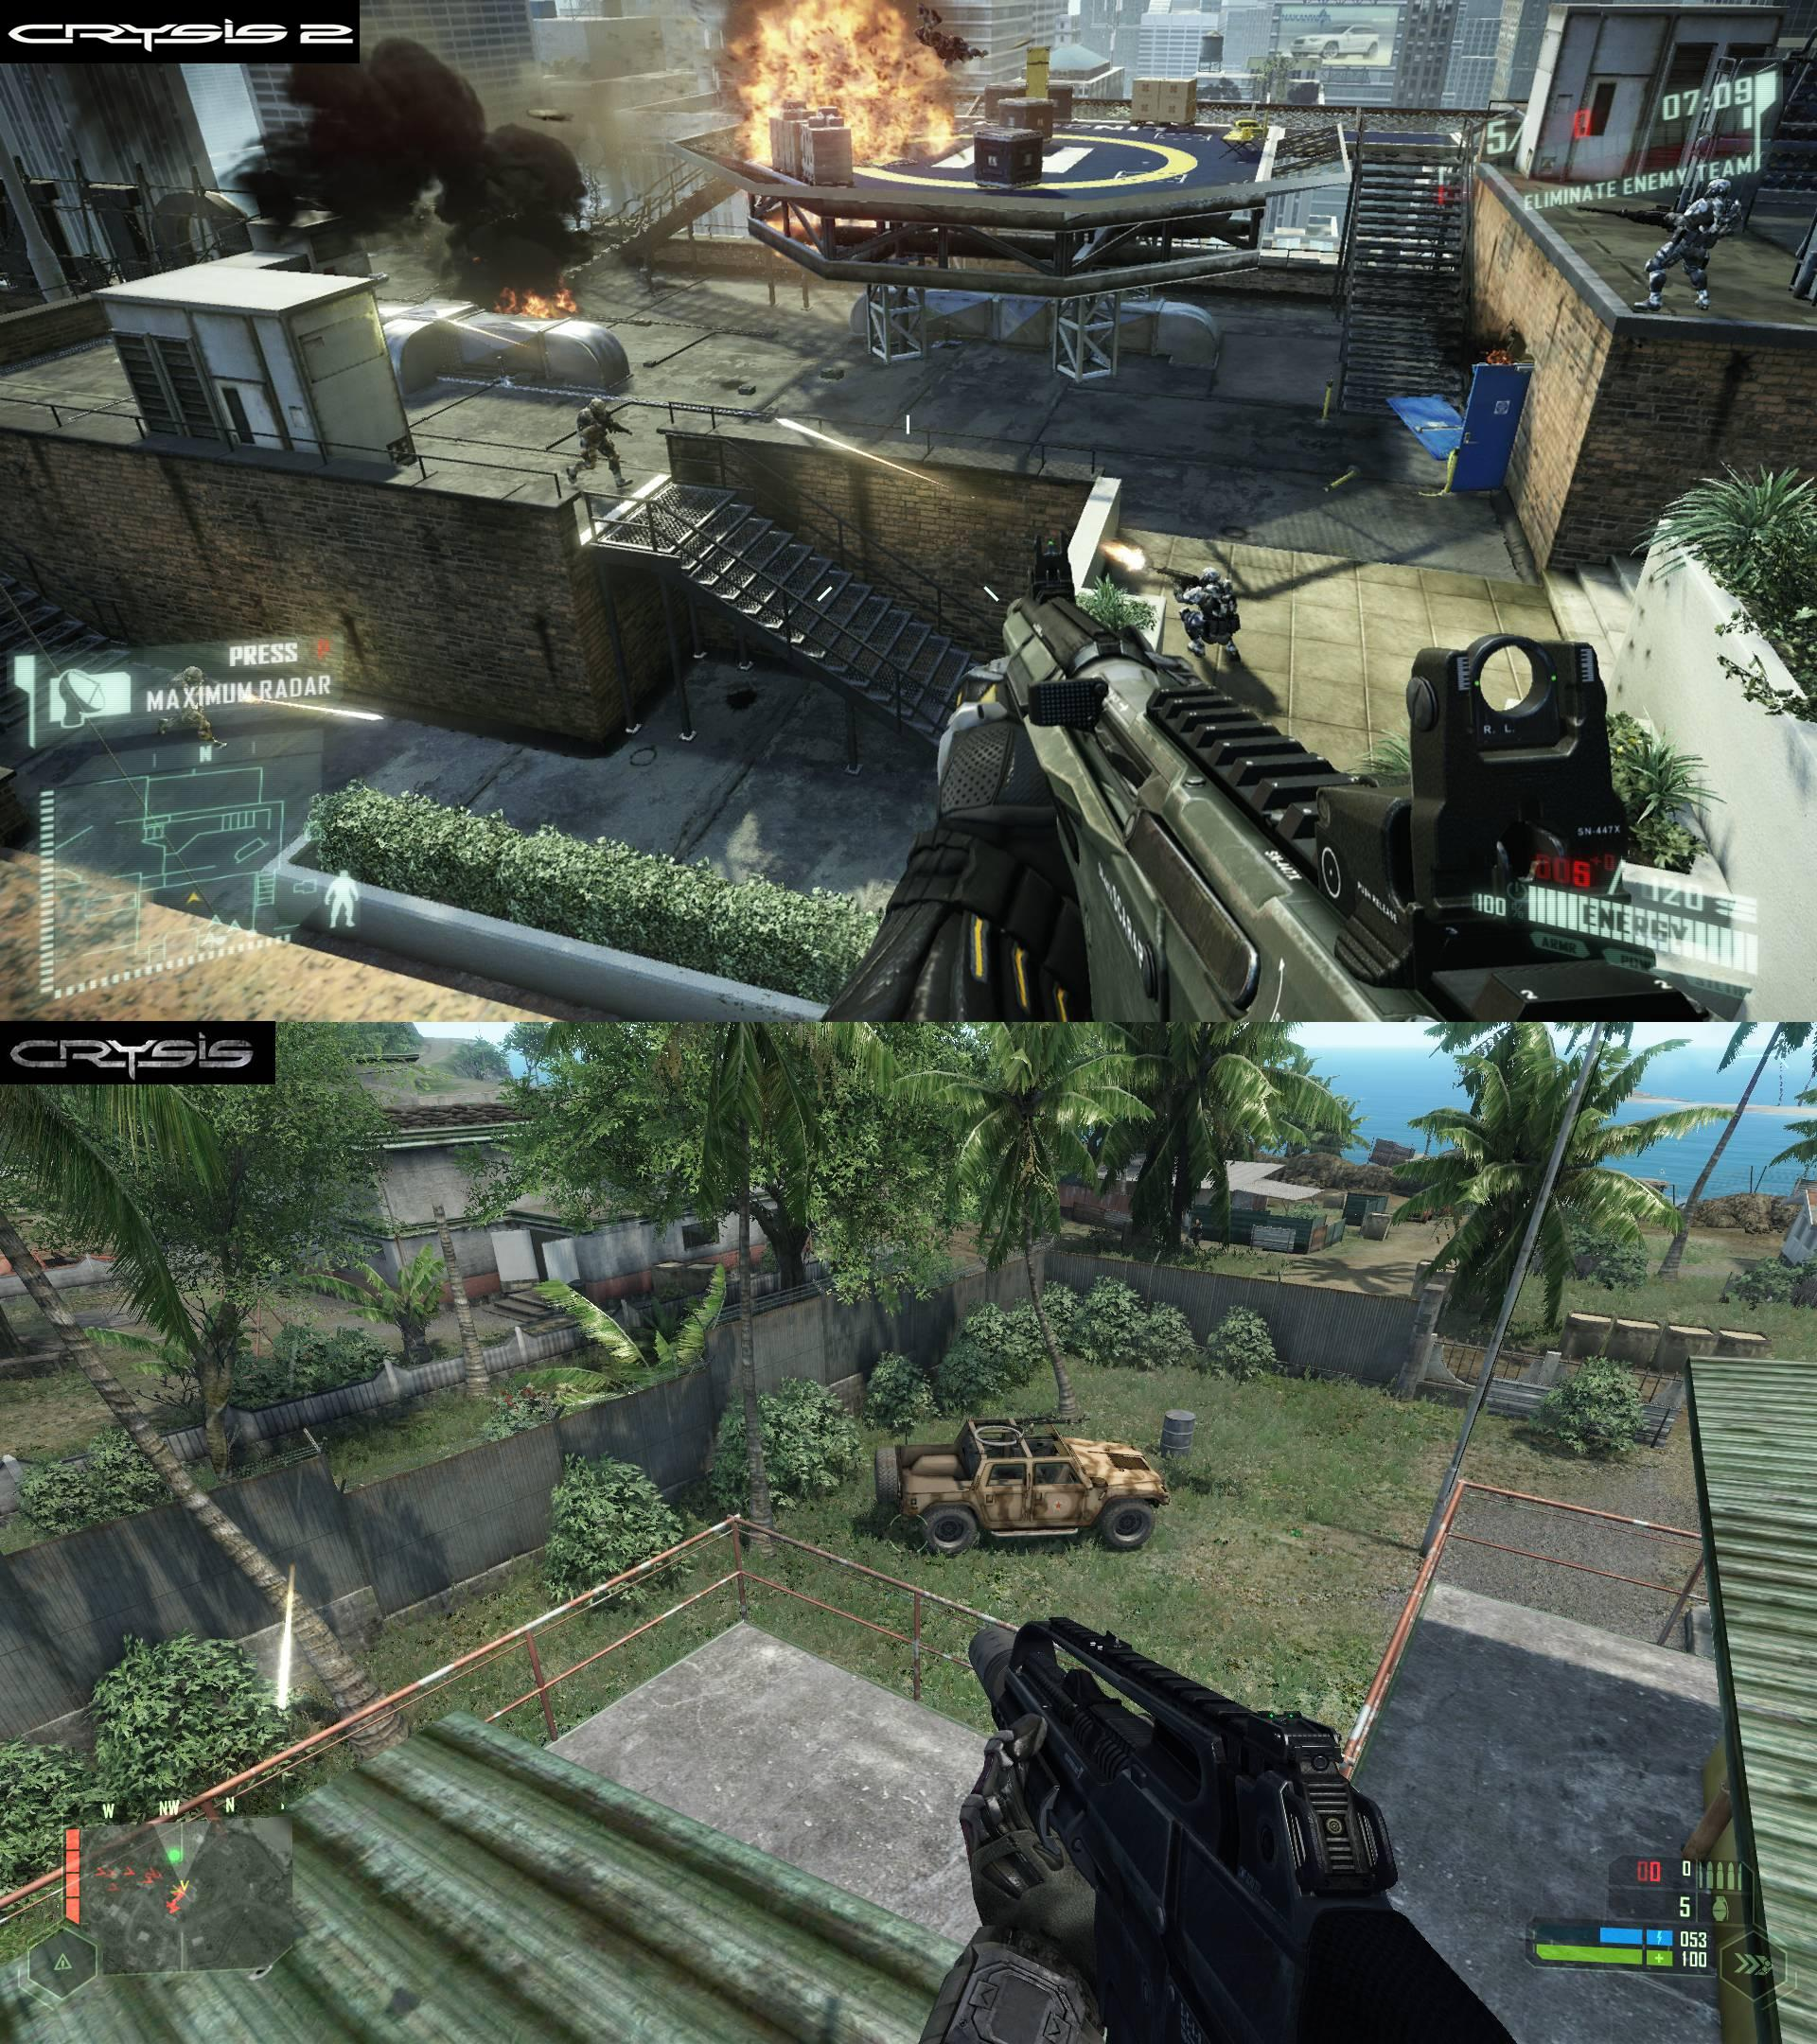 crysis-2-versus-crysis-1-screen-1